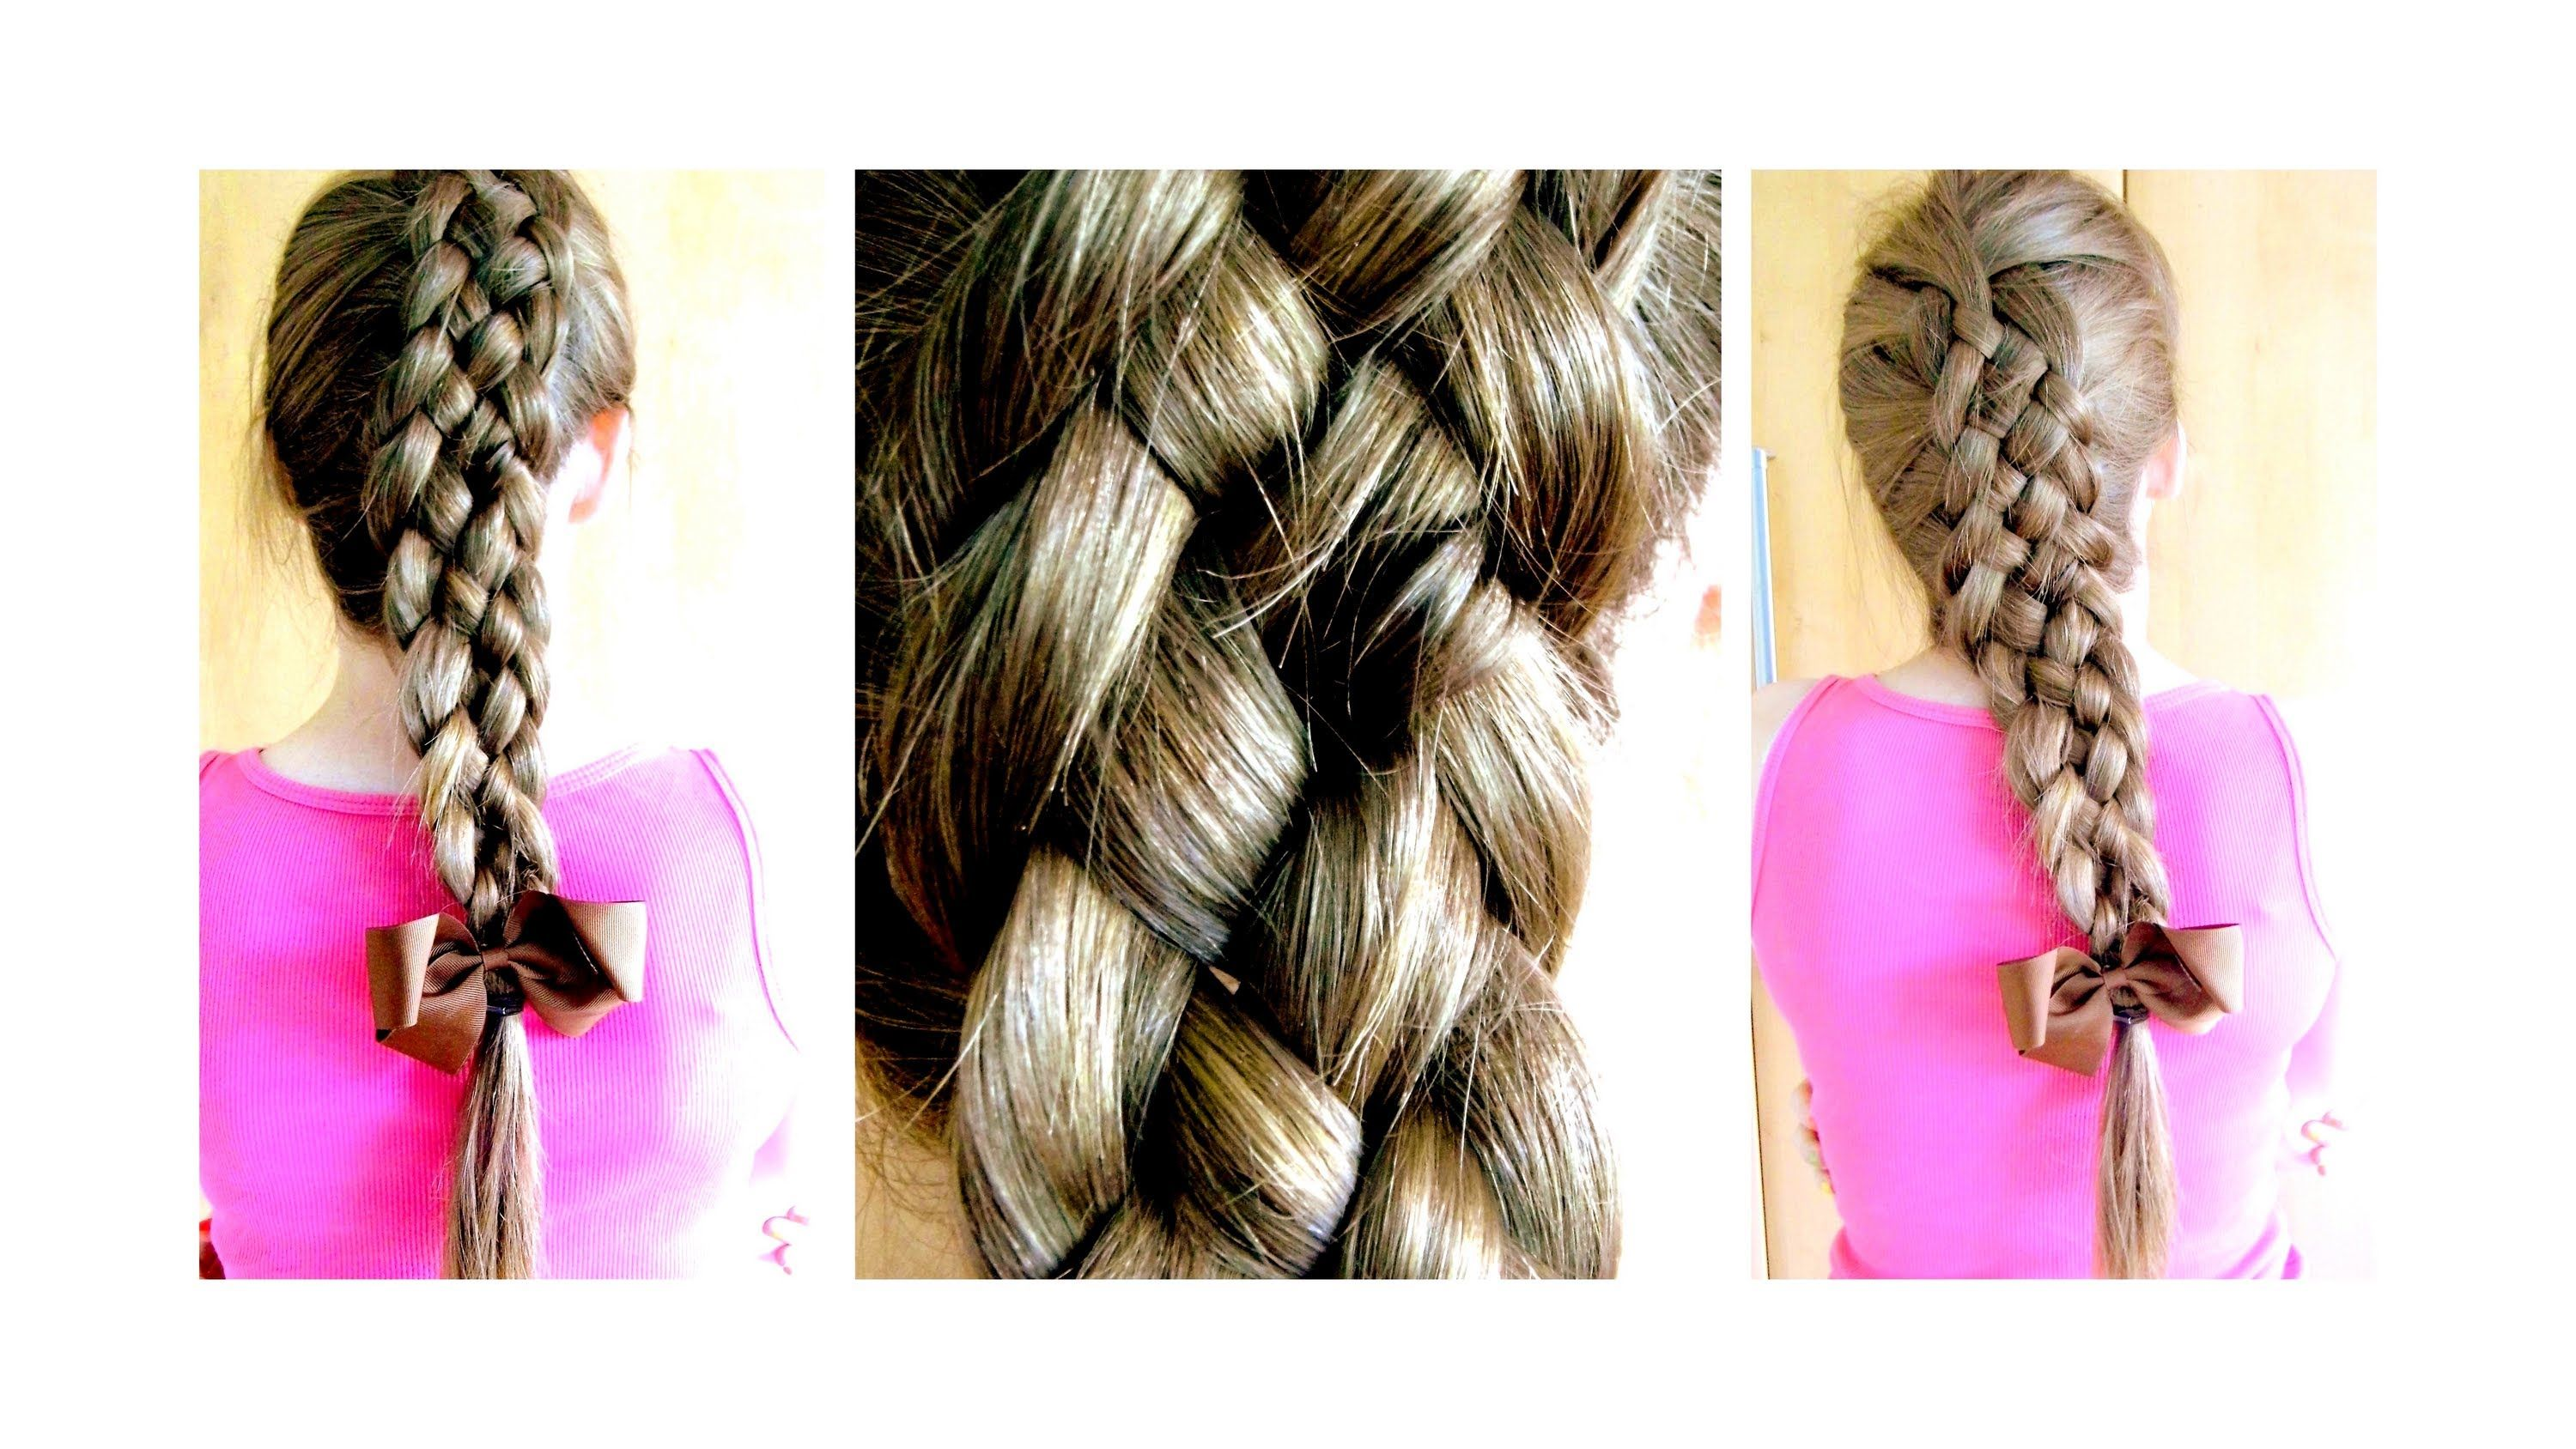 5 strand braid on yourself como hacer una trenza de 5 mechones todays tutorial is how to do 4 braided headbands step by step on yourself perfect for new years eve i tried to do this tutorial a year ago and solutioingenieria Images